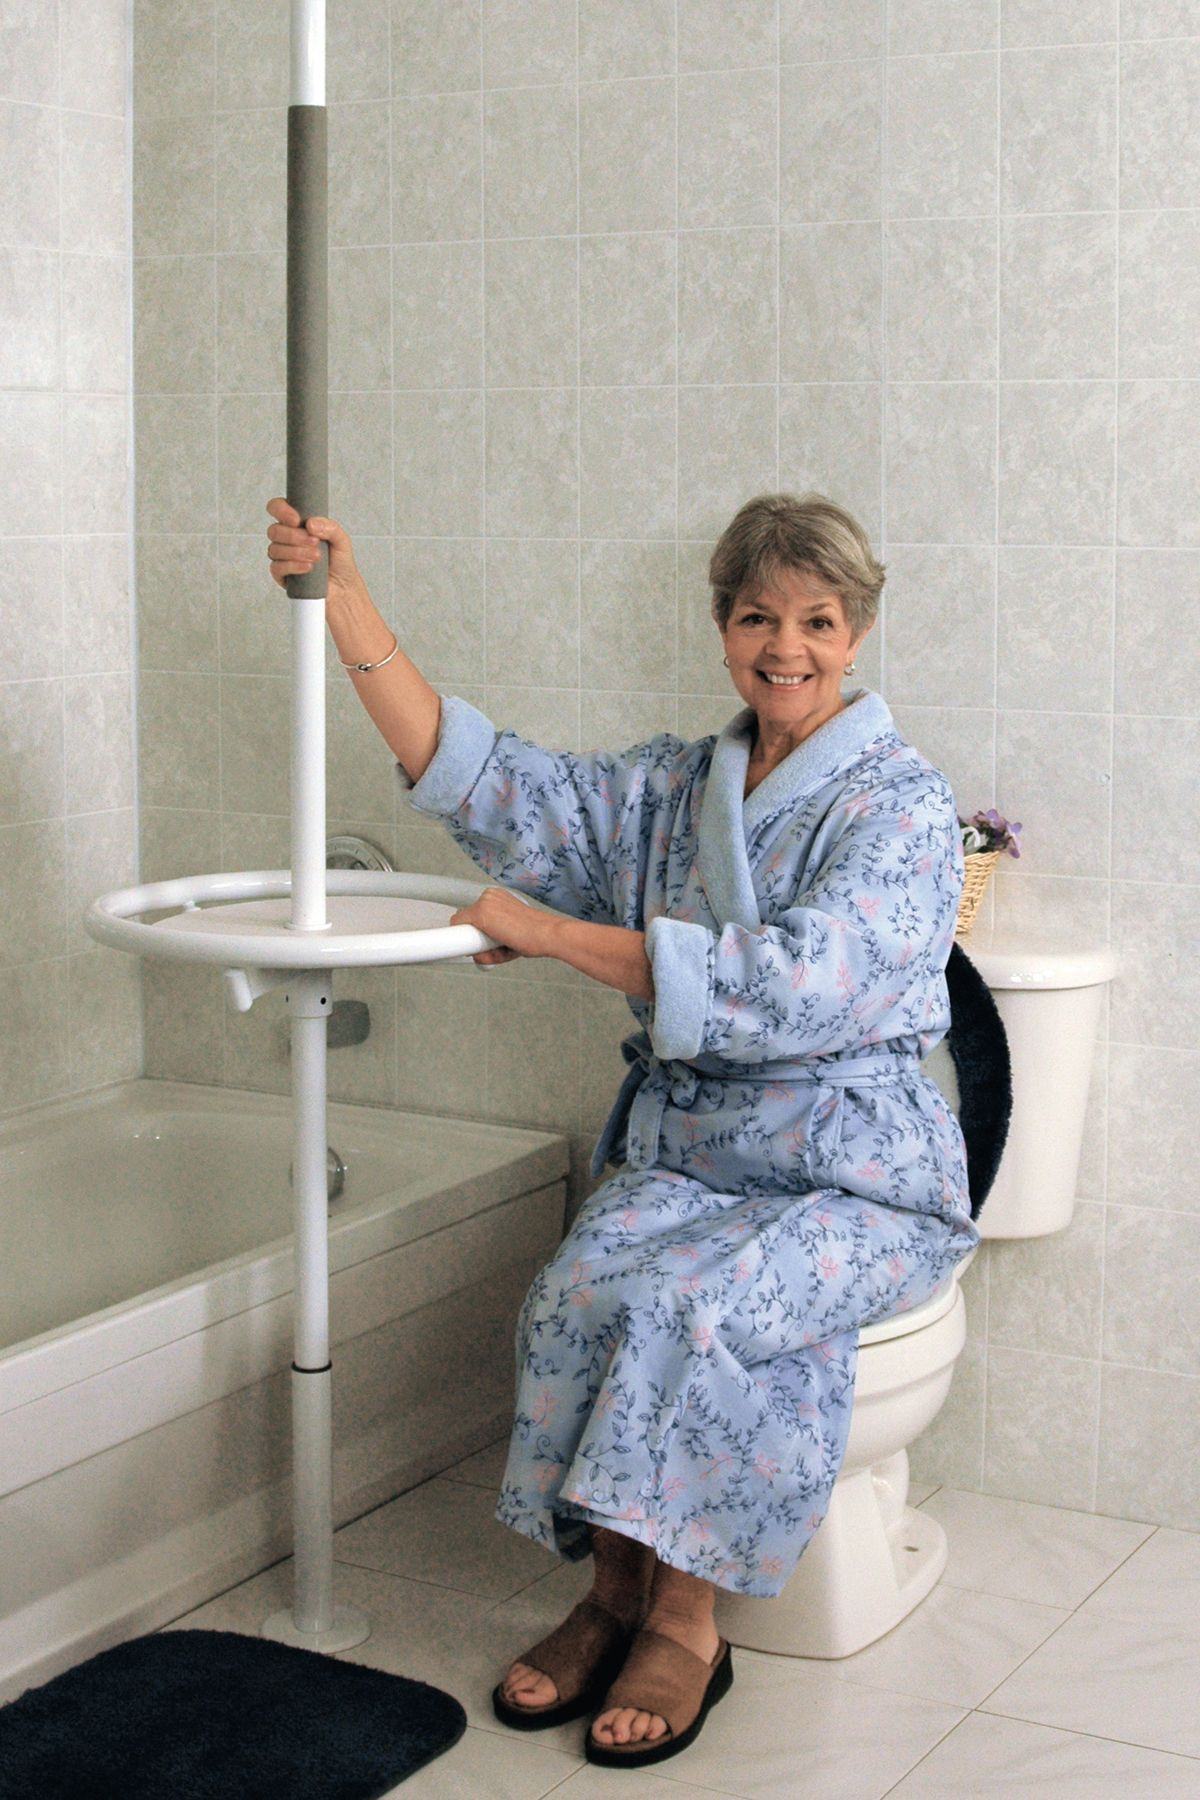 This Might Be A Good Idea For Safety For The Elderly